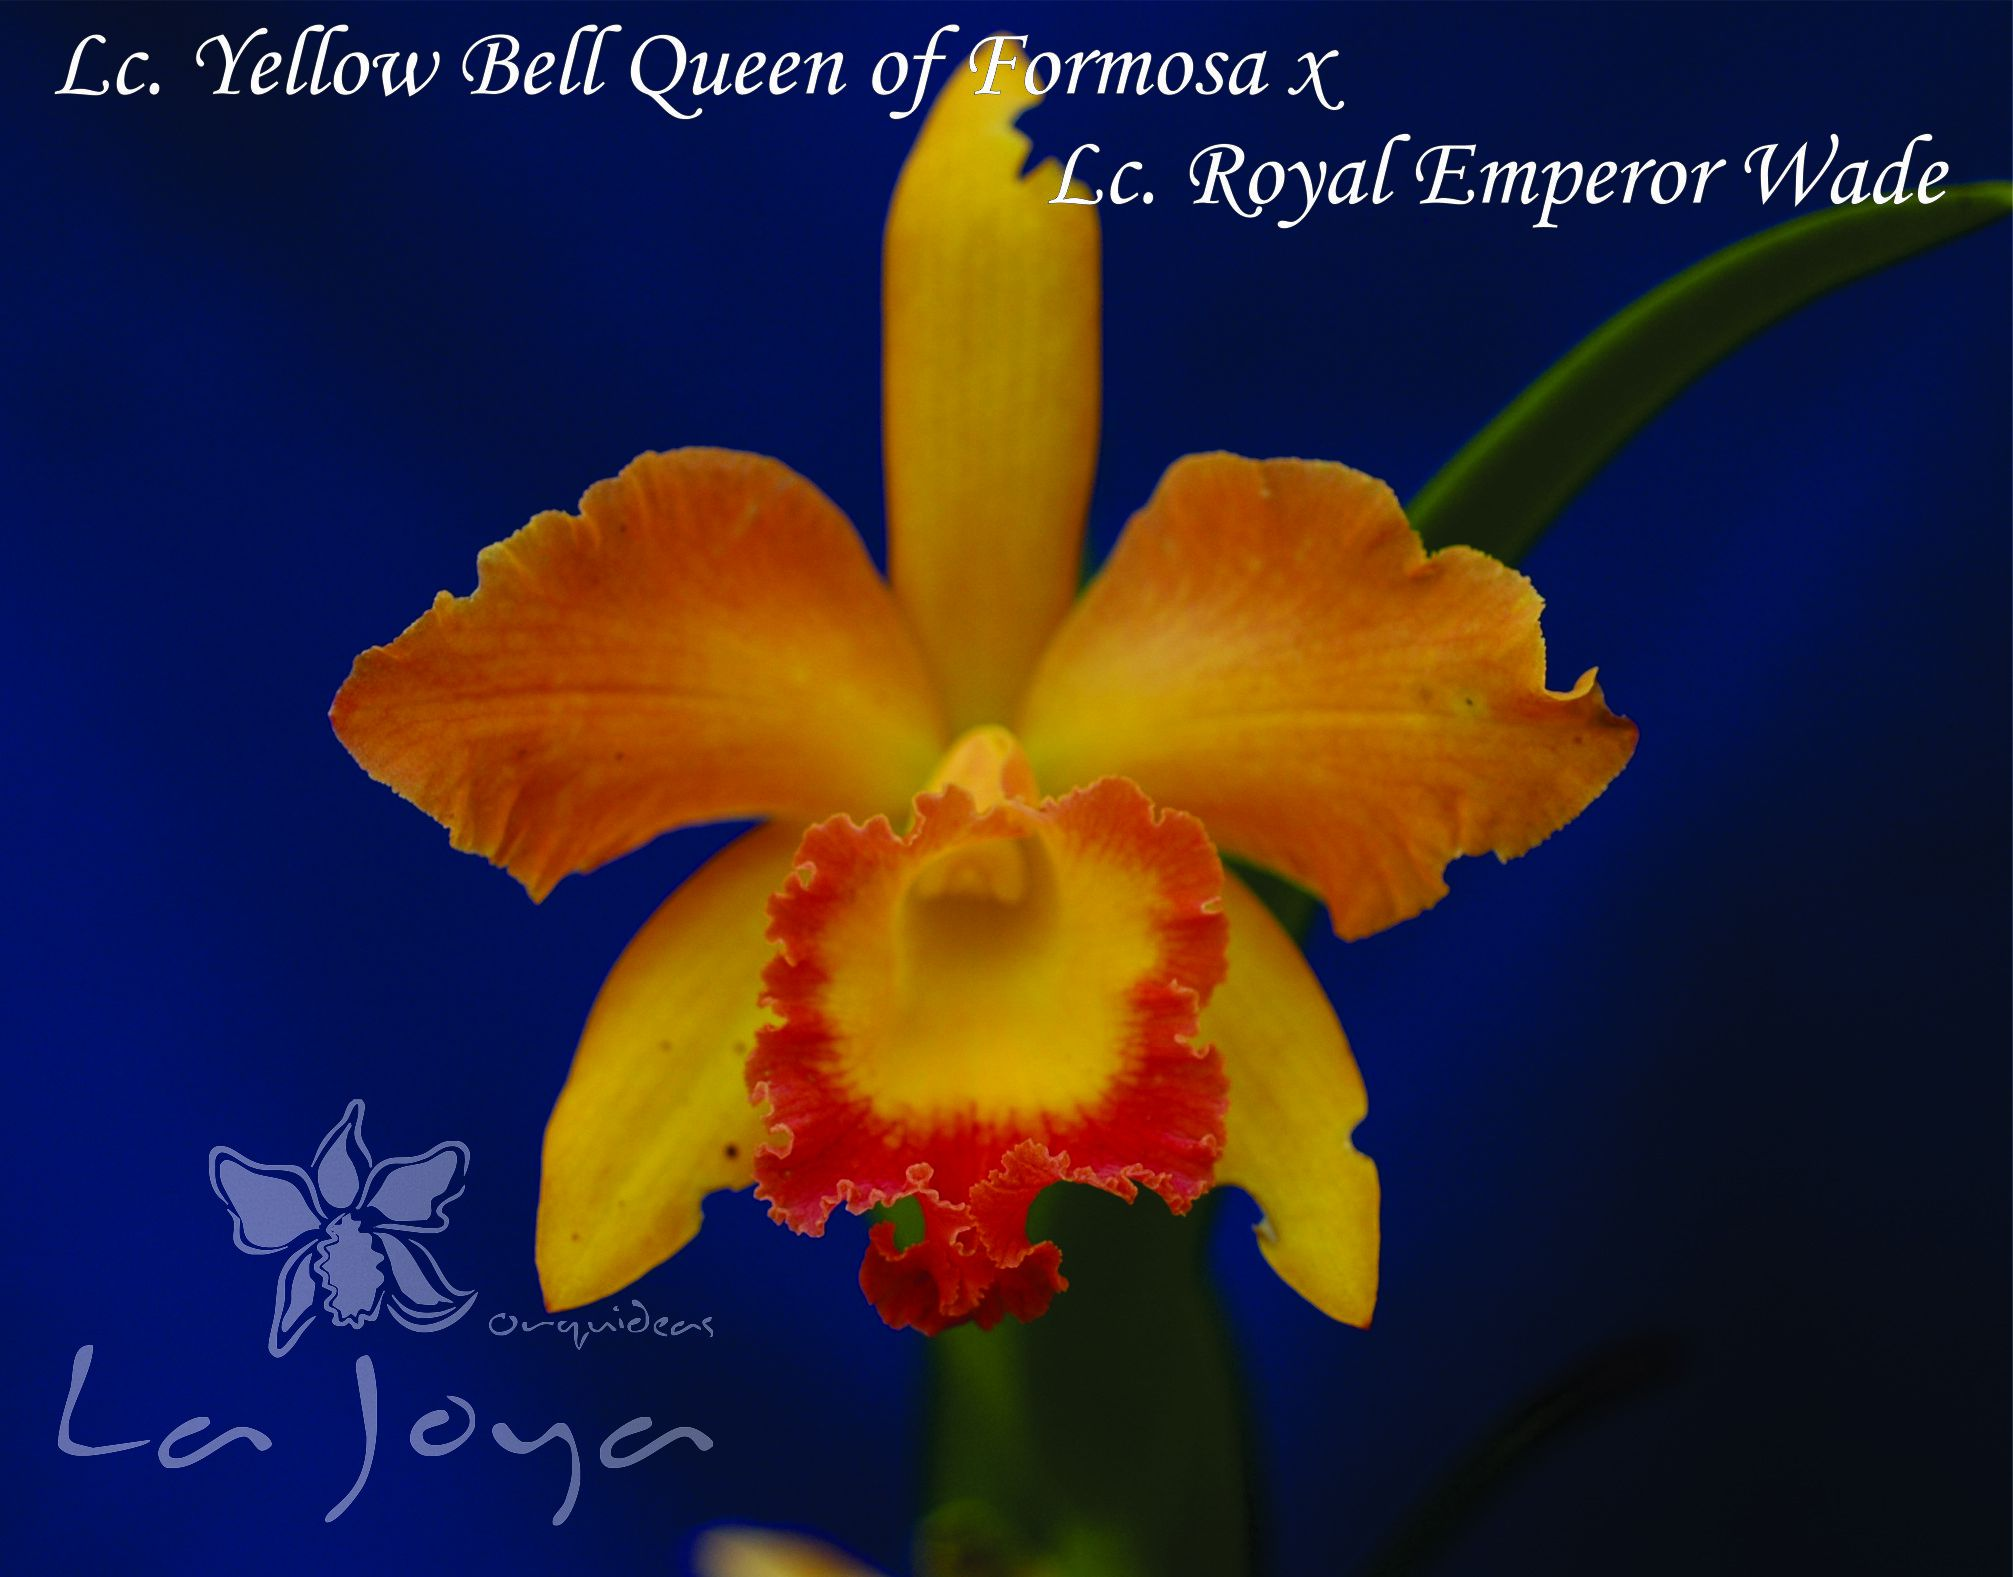 Lc. Yellow Bell Queen of Formosa x Lc. Royal Emperor Wade